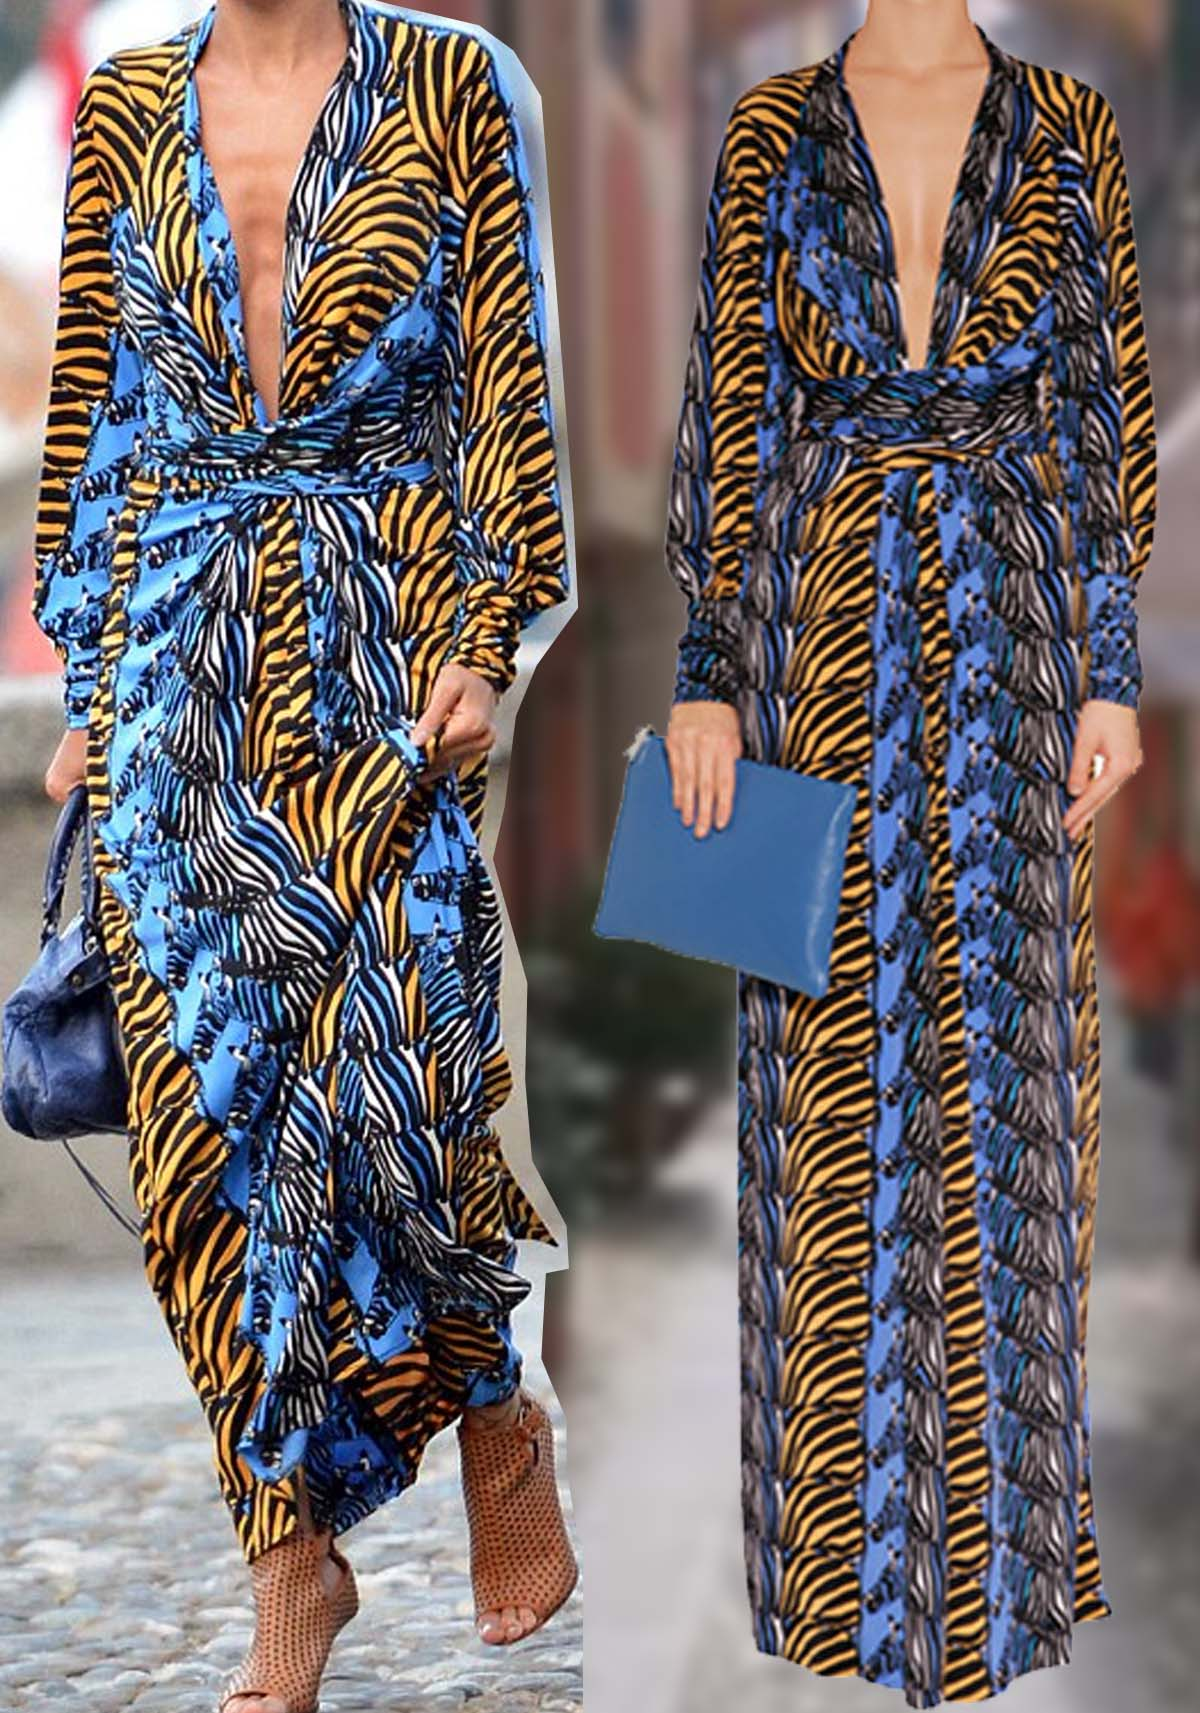 Nicole Richie wearing Issa London denim zebra print maxi silk dress